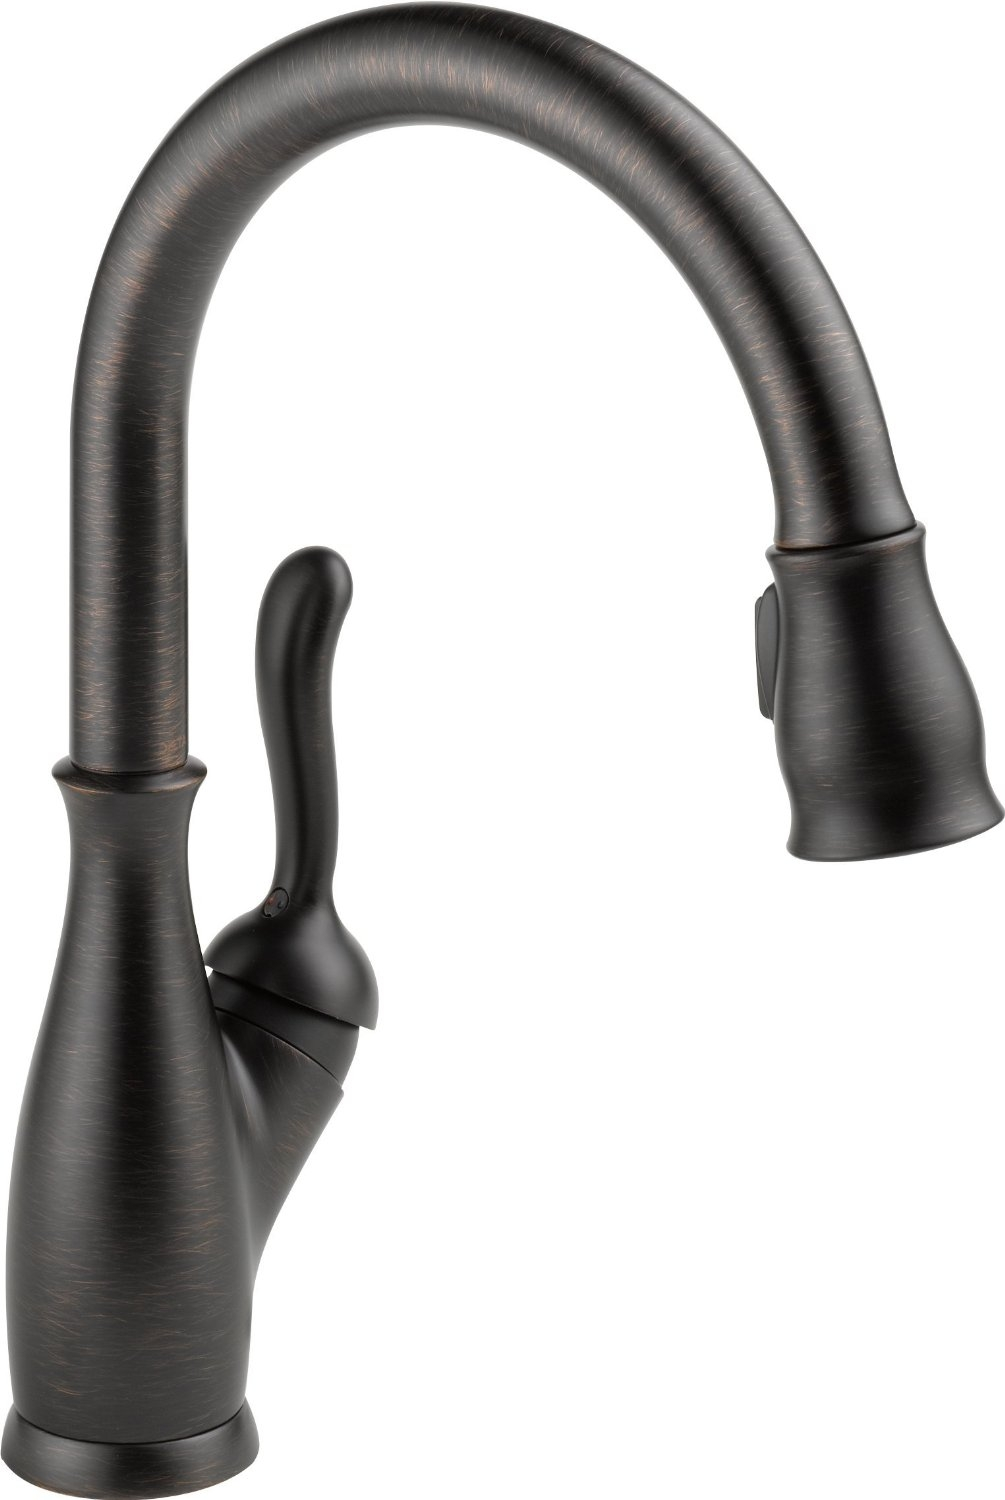 Ideas, inspirational delta oil rubbed bronze kitchen faucet 11 on home with sizing 1005 x 1500  .